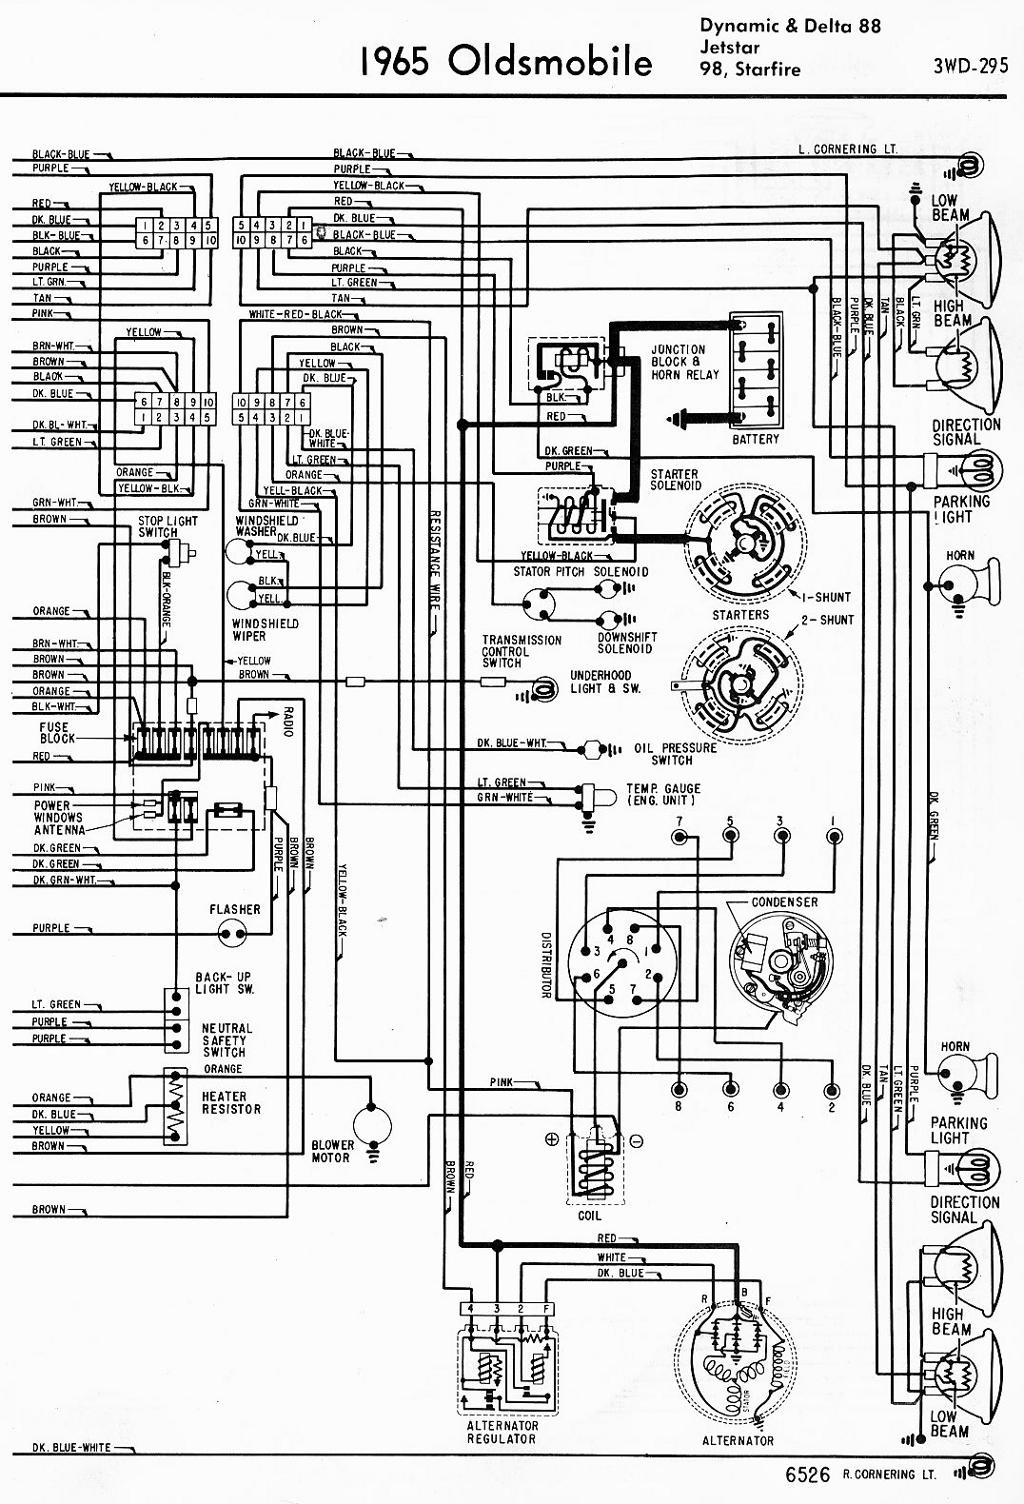 Diagram Wiring Diagram Oldsmobile 88 Full Version Hd Quality Oldsmobile 88 Carschematics2c Angelux It